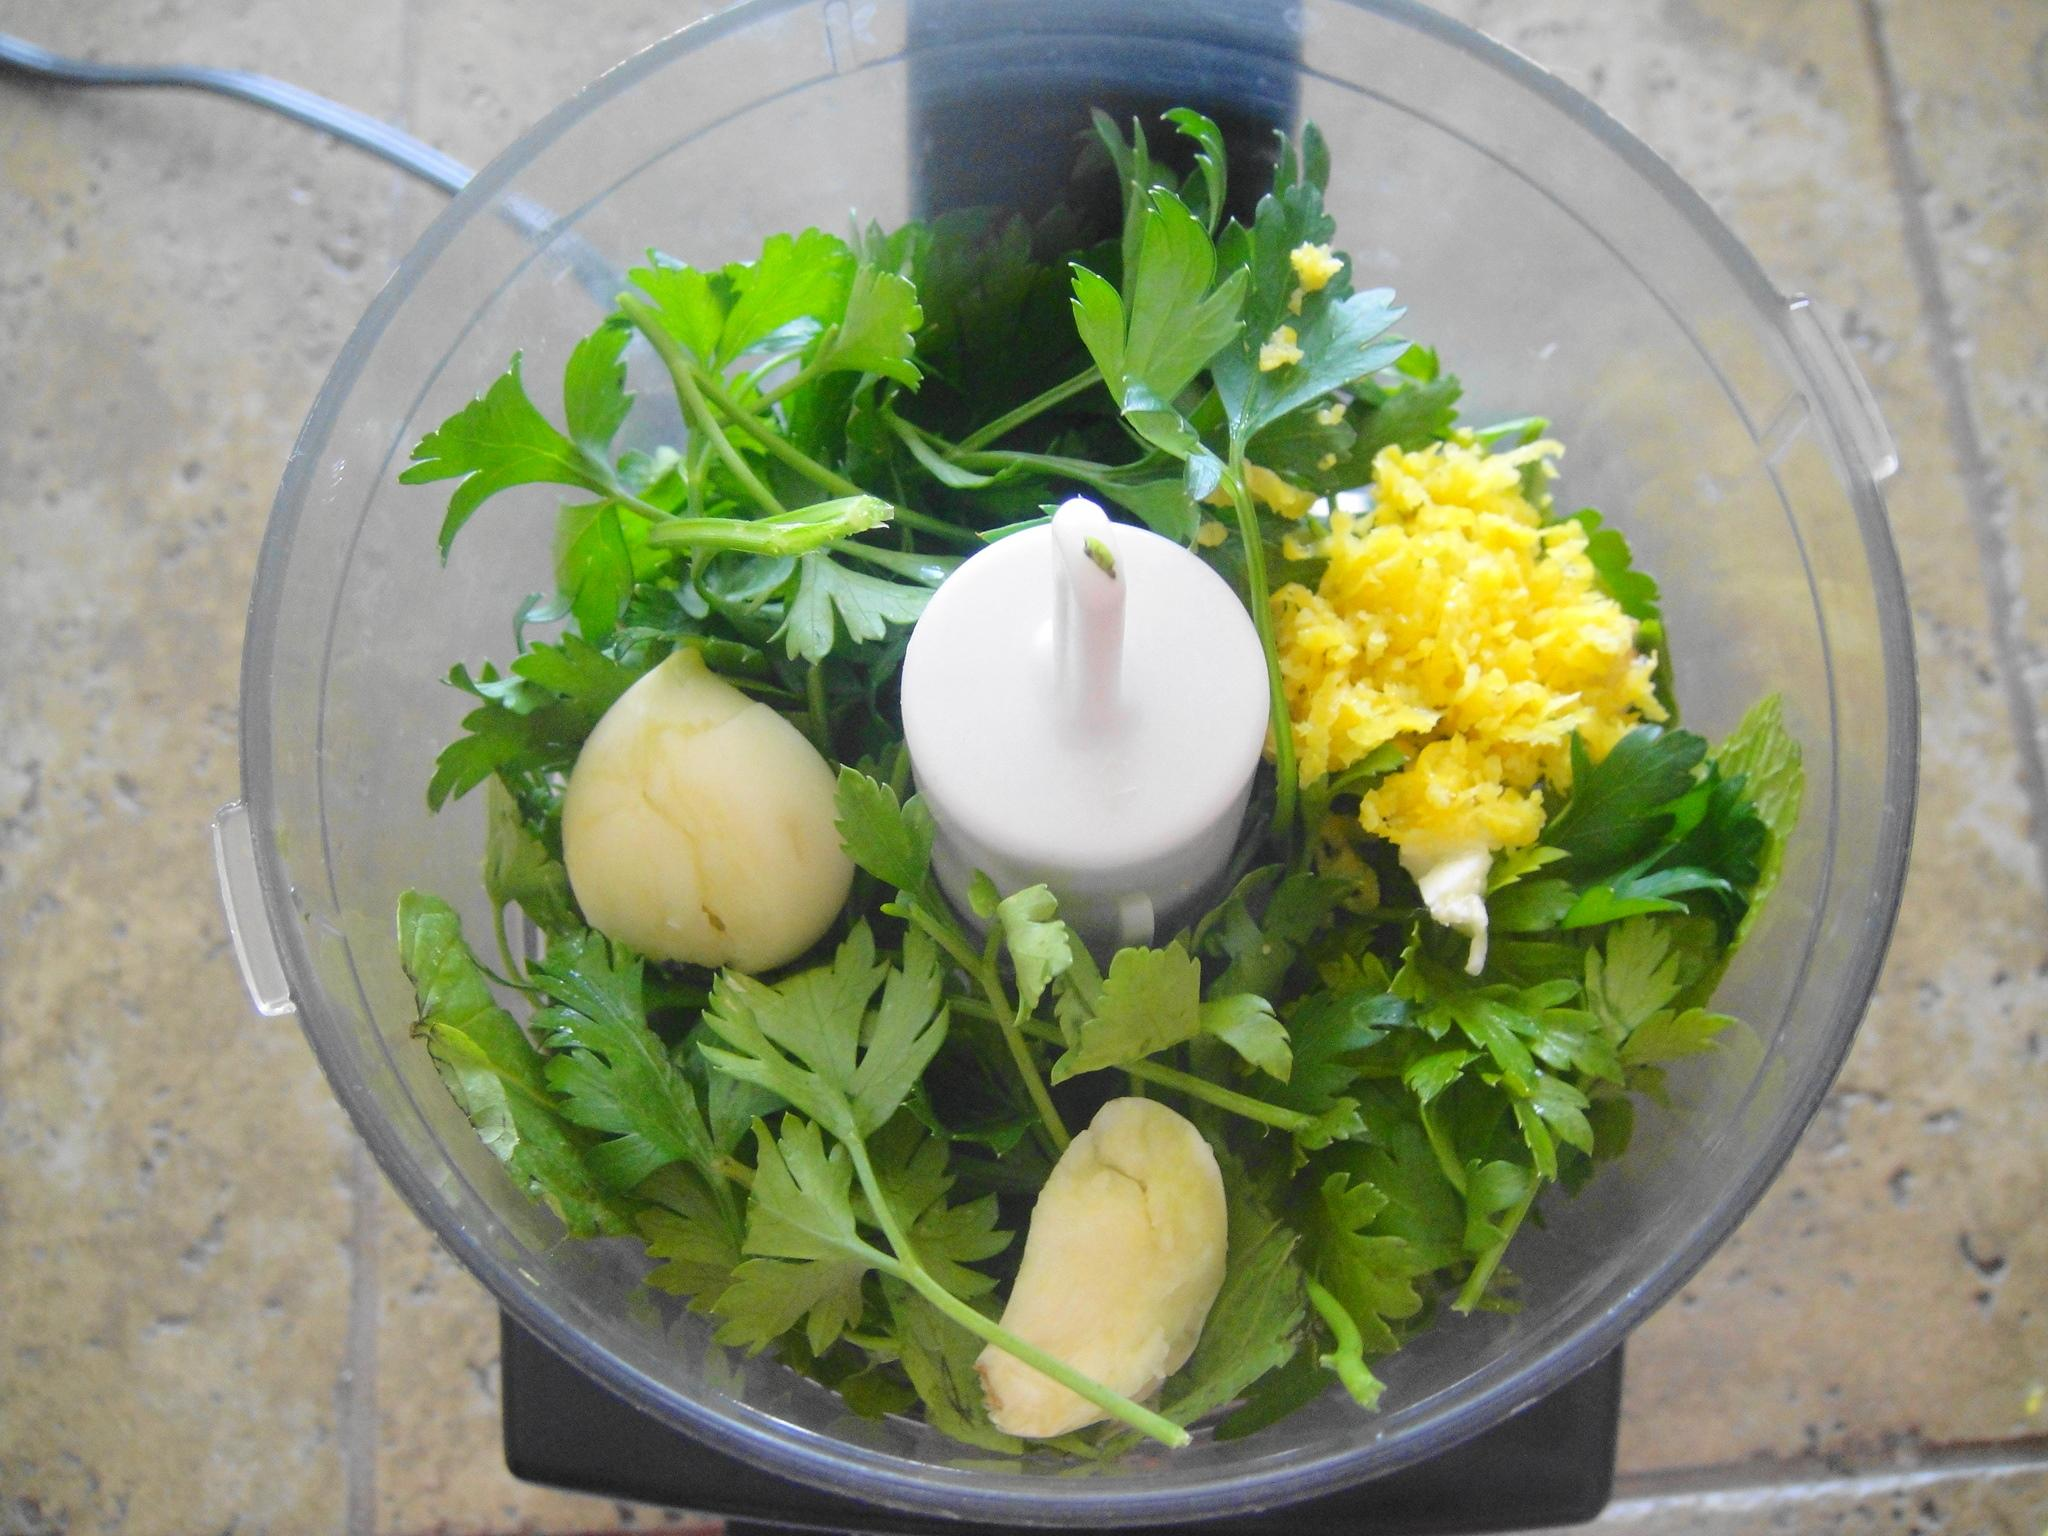 ingredients in mini chopper gremolata